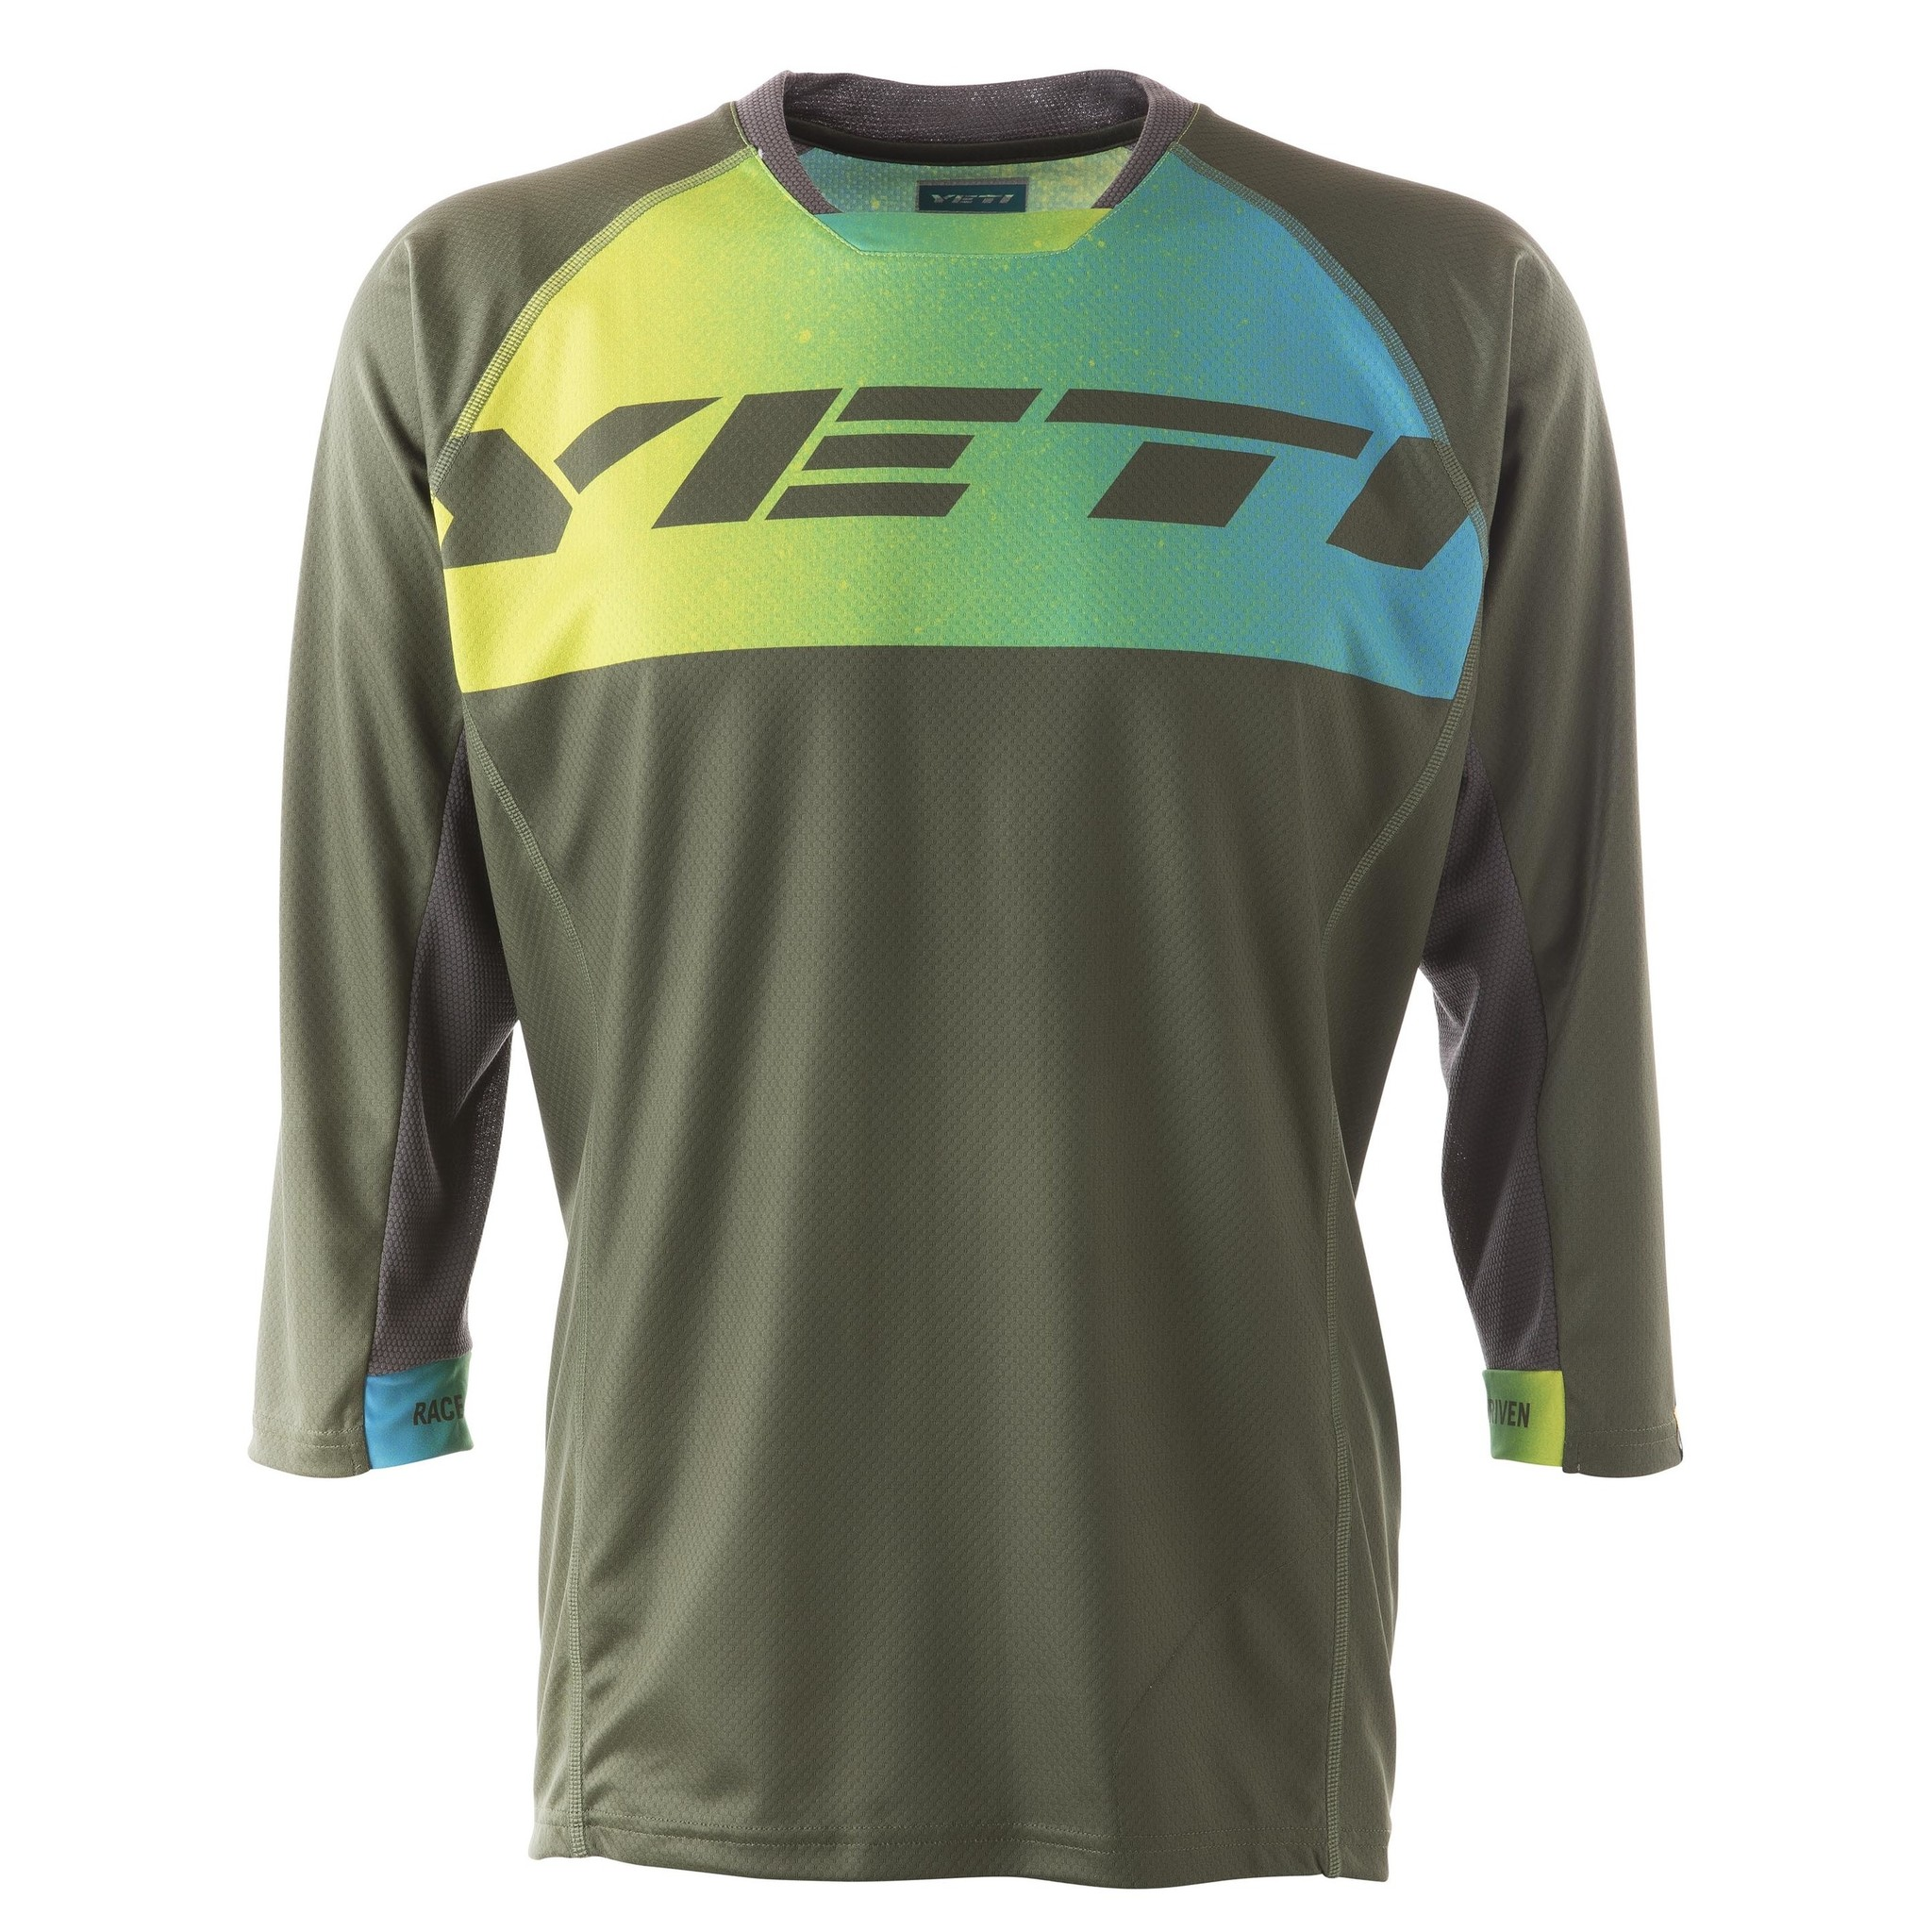 Yeti Cycles Yeti Enduro Jersey